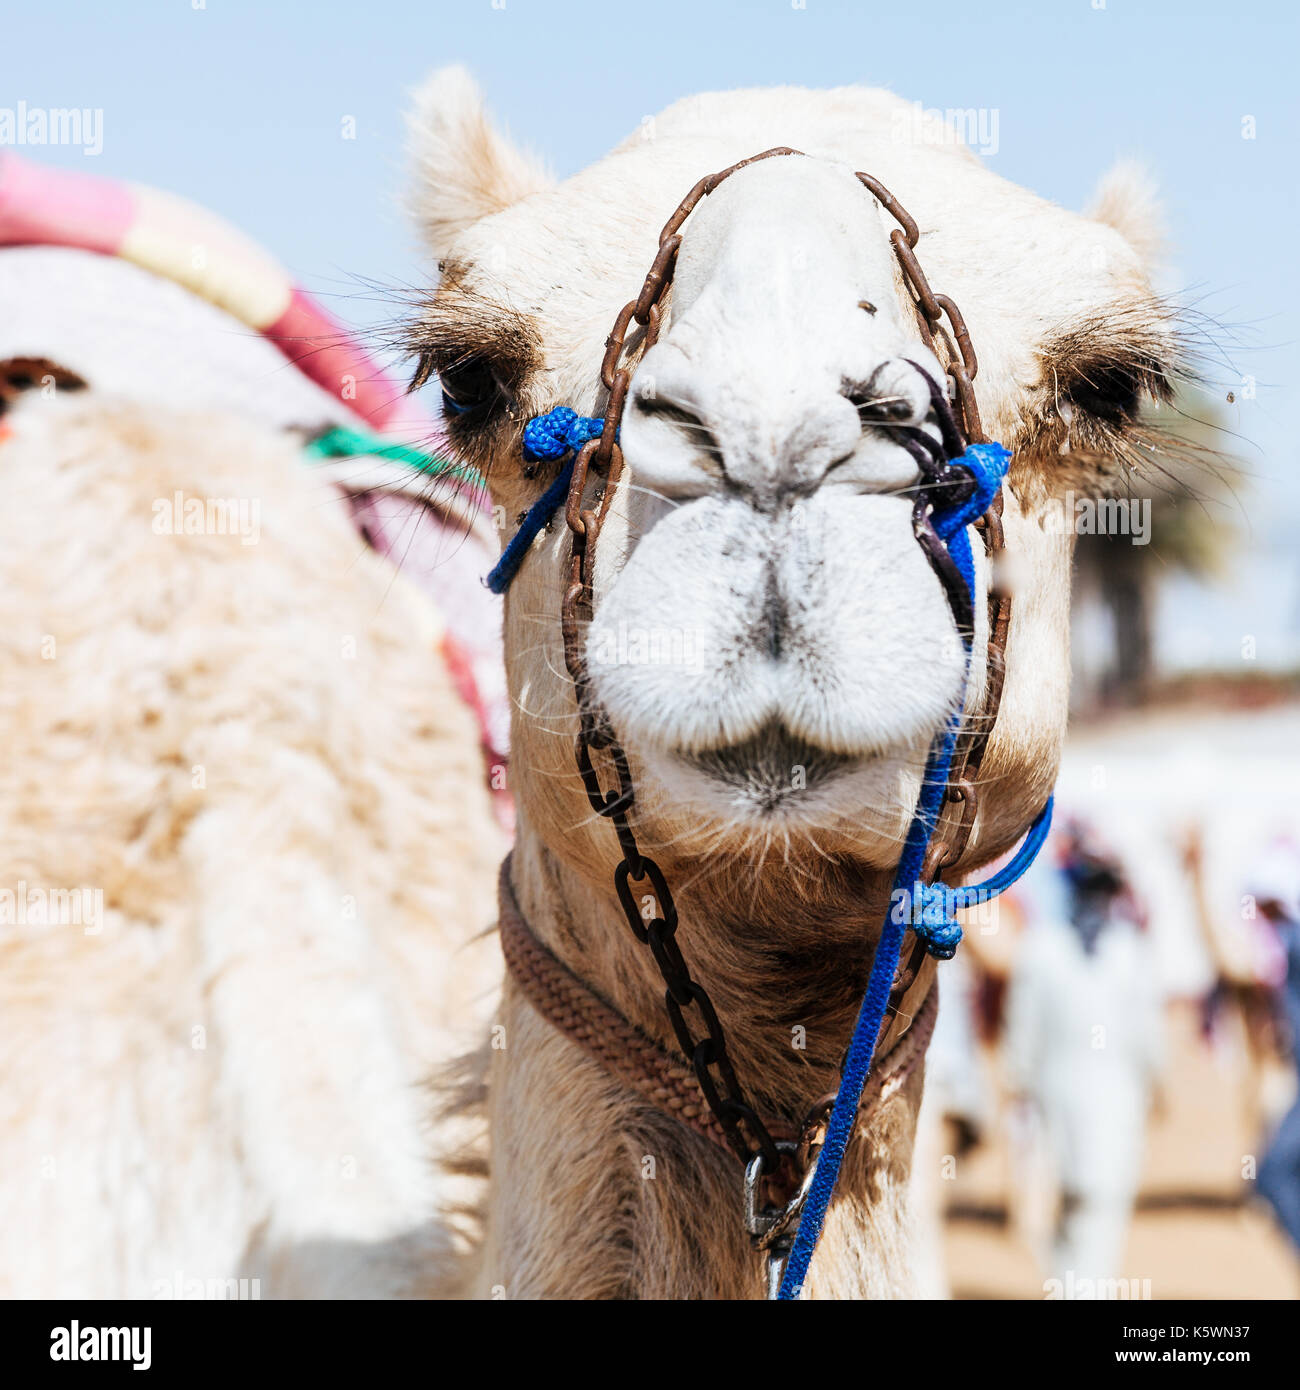 Portrait shot of a camel at Dubai Camel Racing Club, UAE - Stock Image